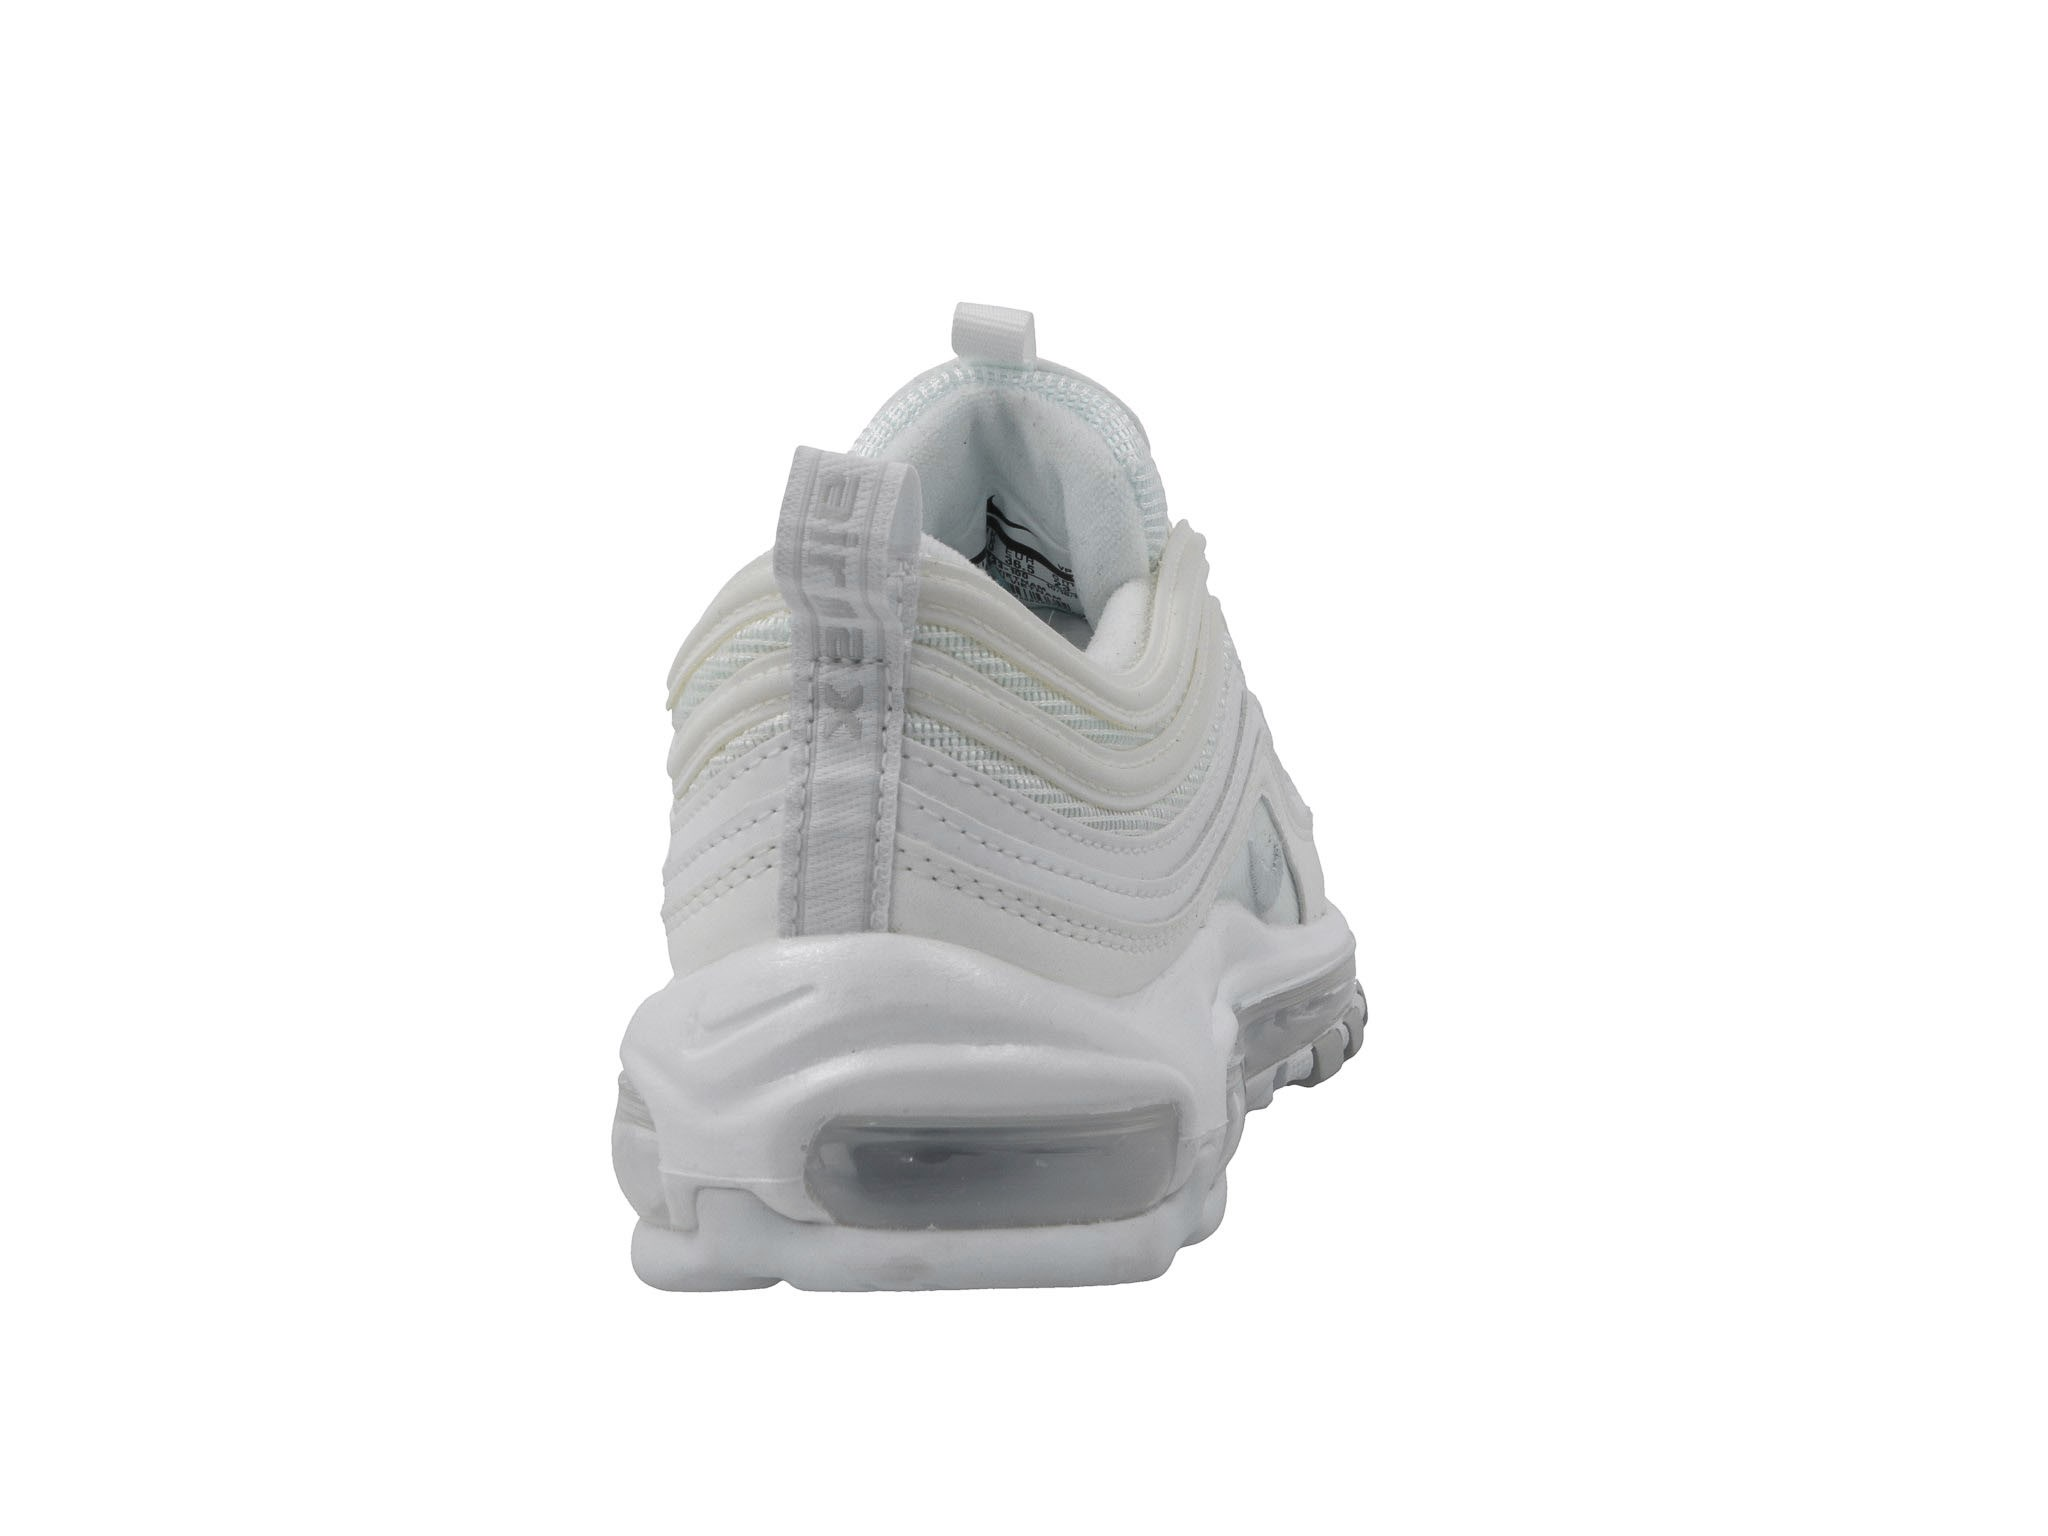 Buty damskie sneakers Nike Air Max 97 white white pure platinum (921733 100)